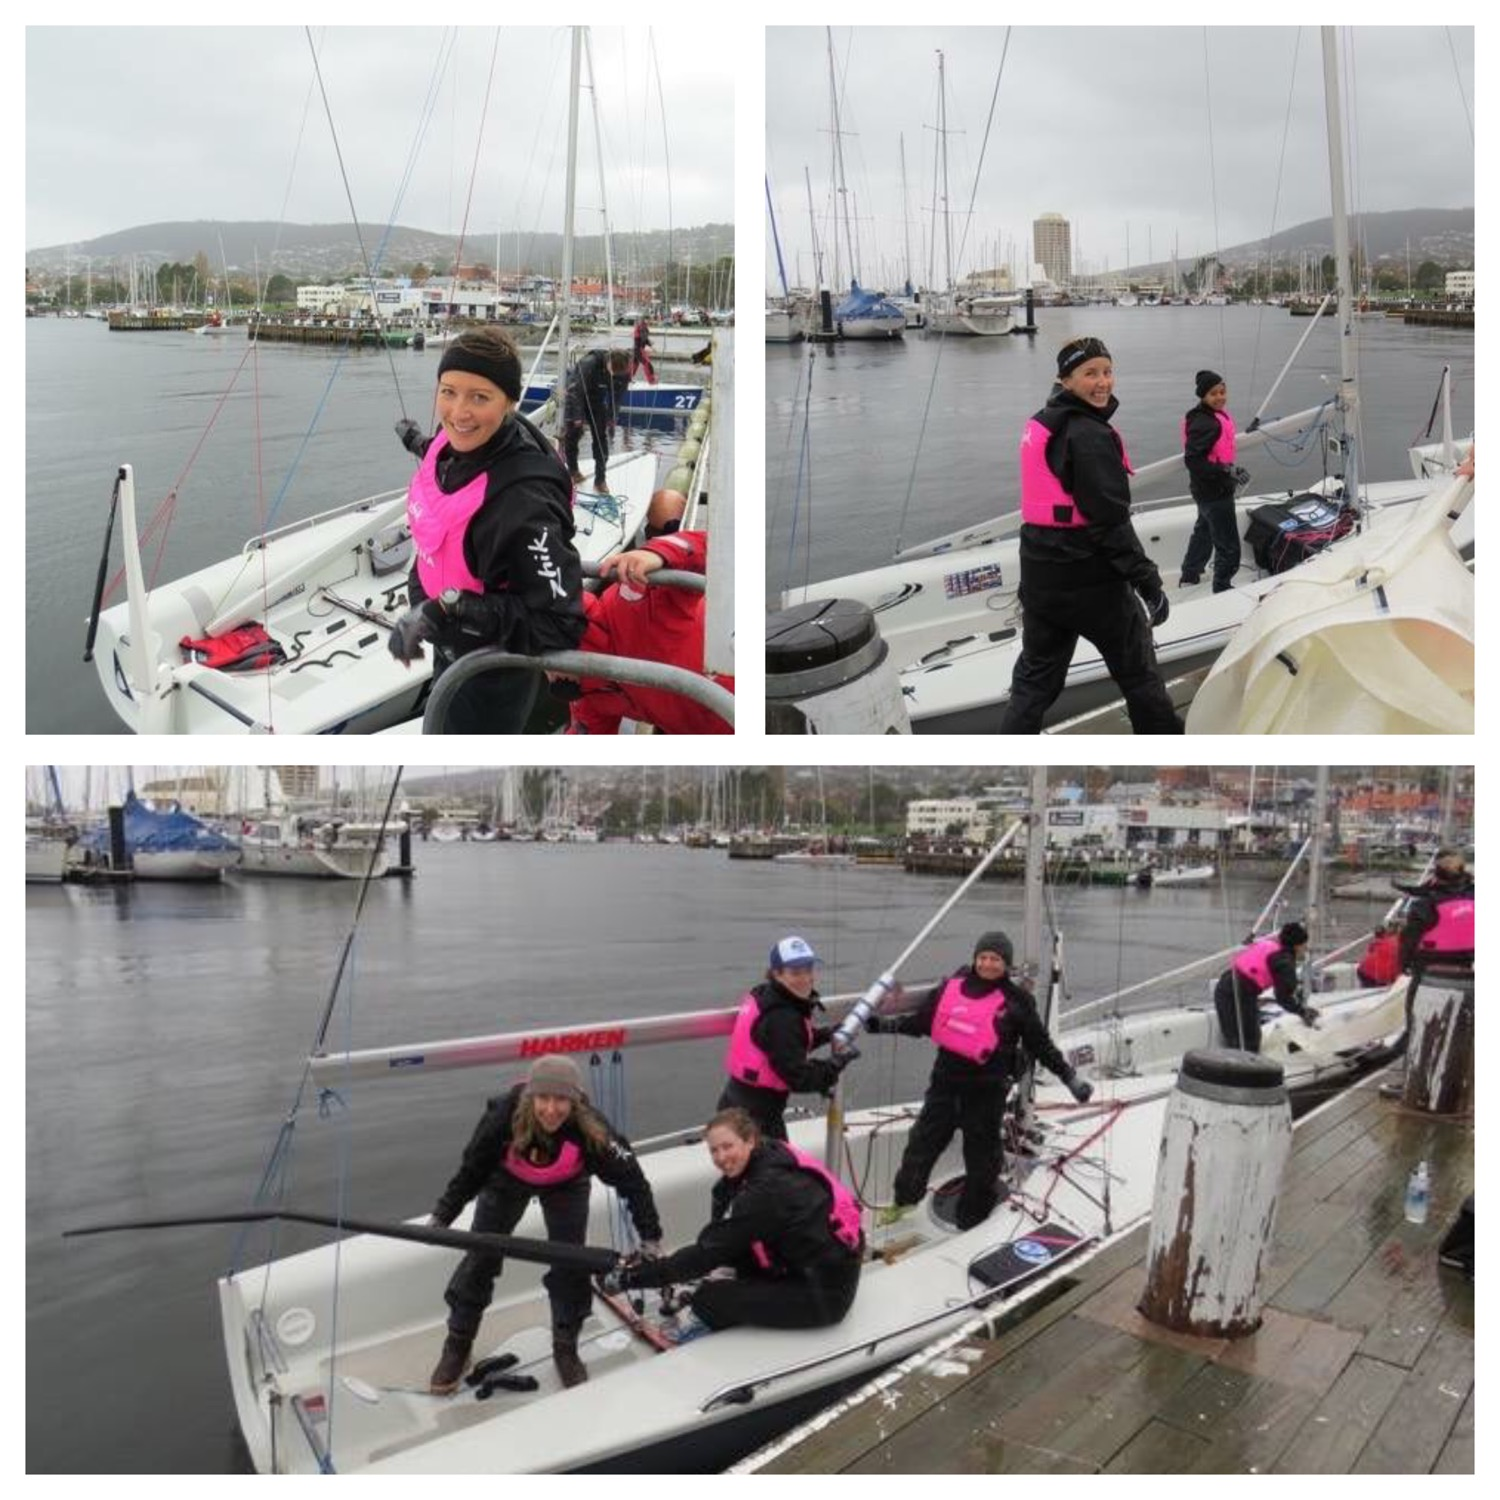 Members of Athena Sailing prepare one of their SB20 for racing on the Derwent